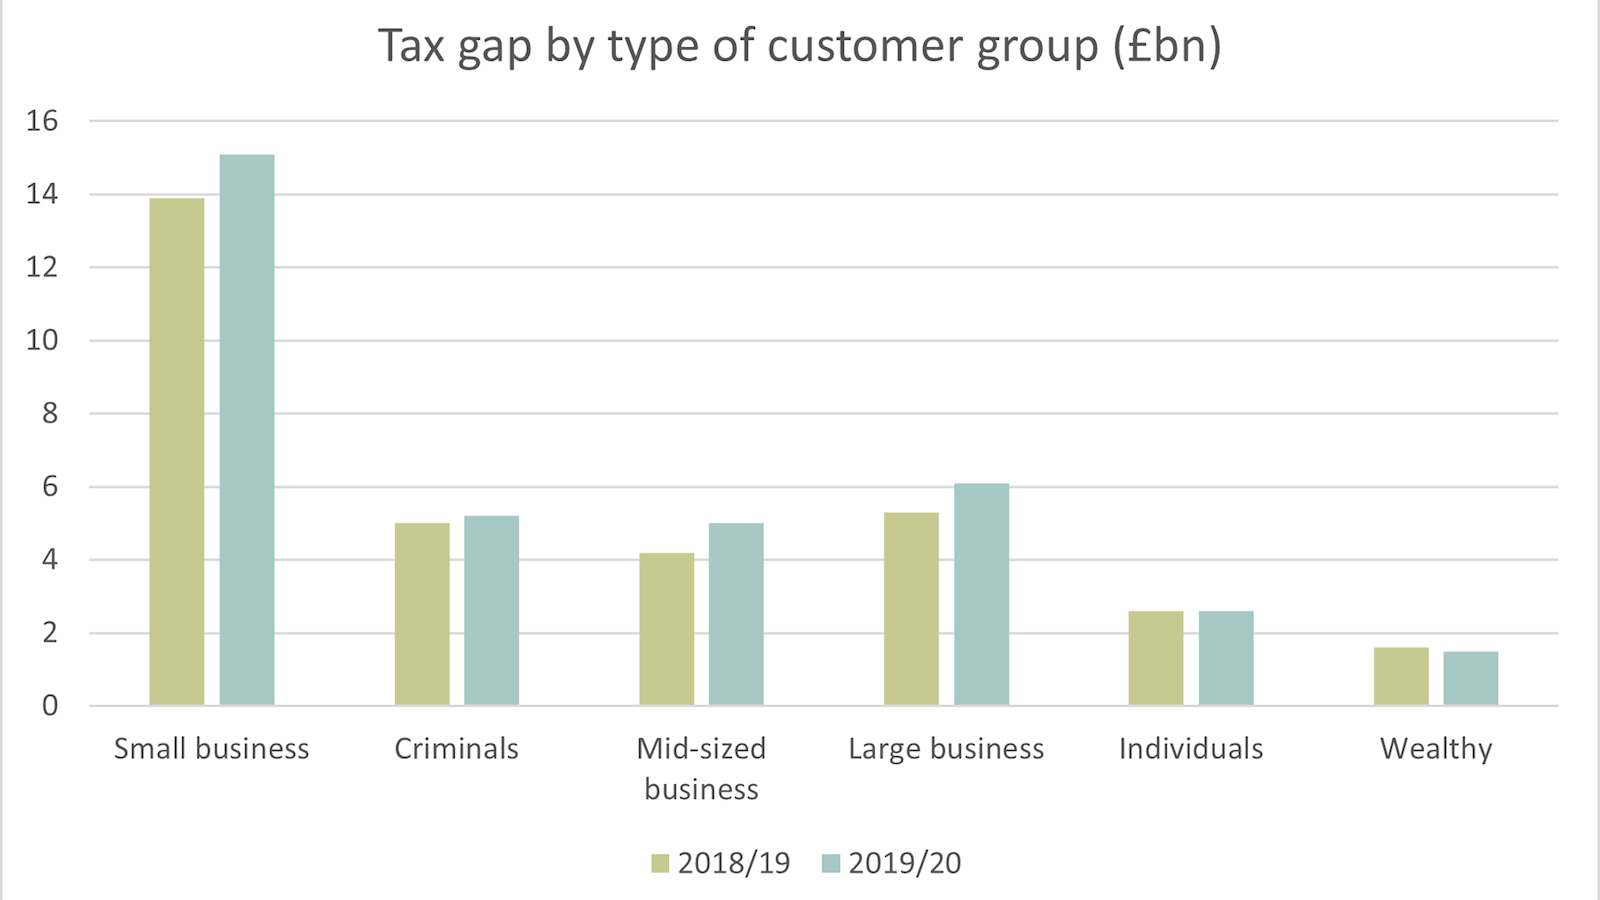 Table showing the tax gap for 2019/20 by type of customer group according to HMRC data.